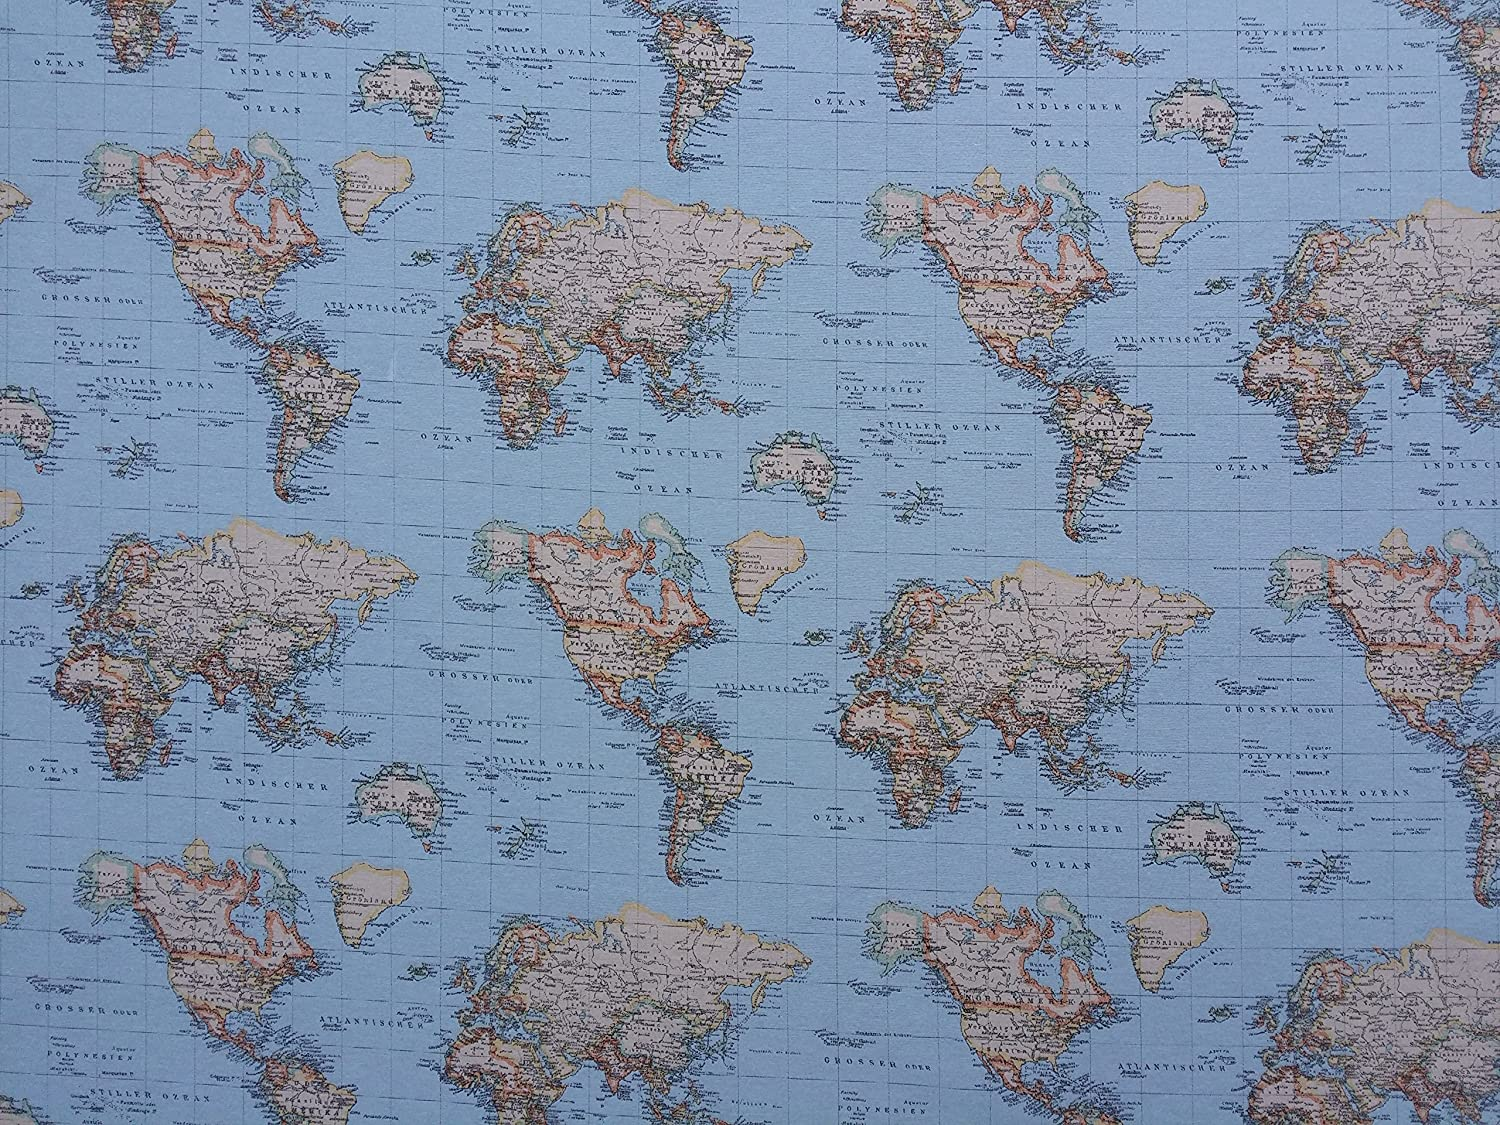 World map print 100 cotton designer curtains bedding cushion world map print 100 cotton designer curtains bedding cushion covers upholstery roman blinds fabric prestige fashion uk ltd amazon kitchen gumiabroncs Image collections